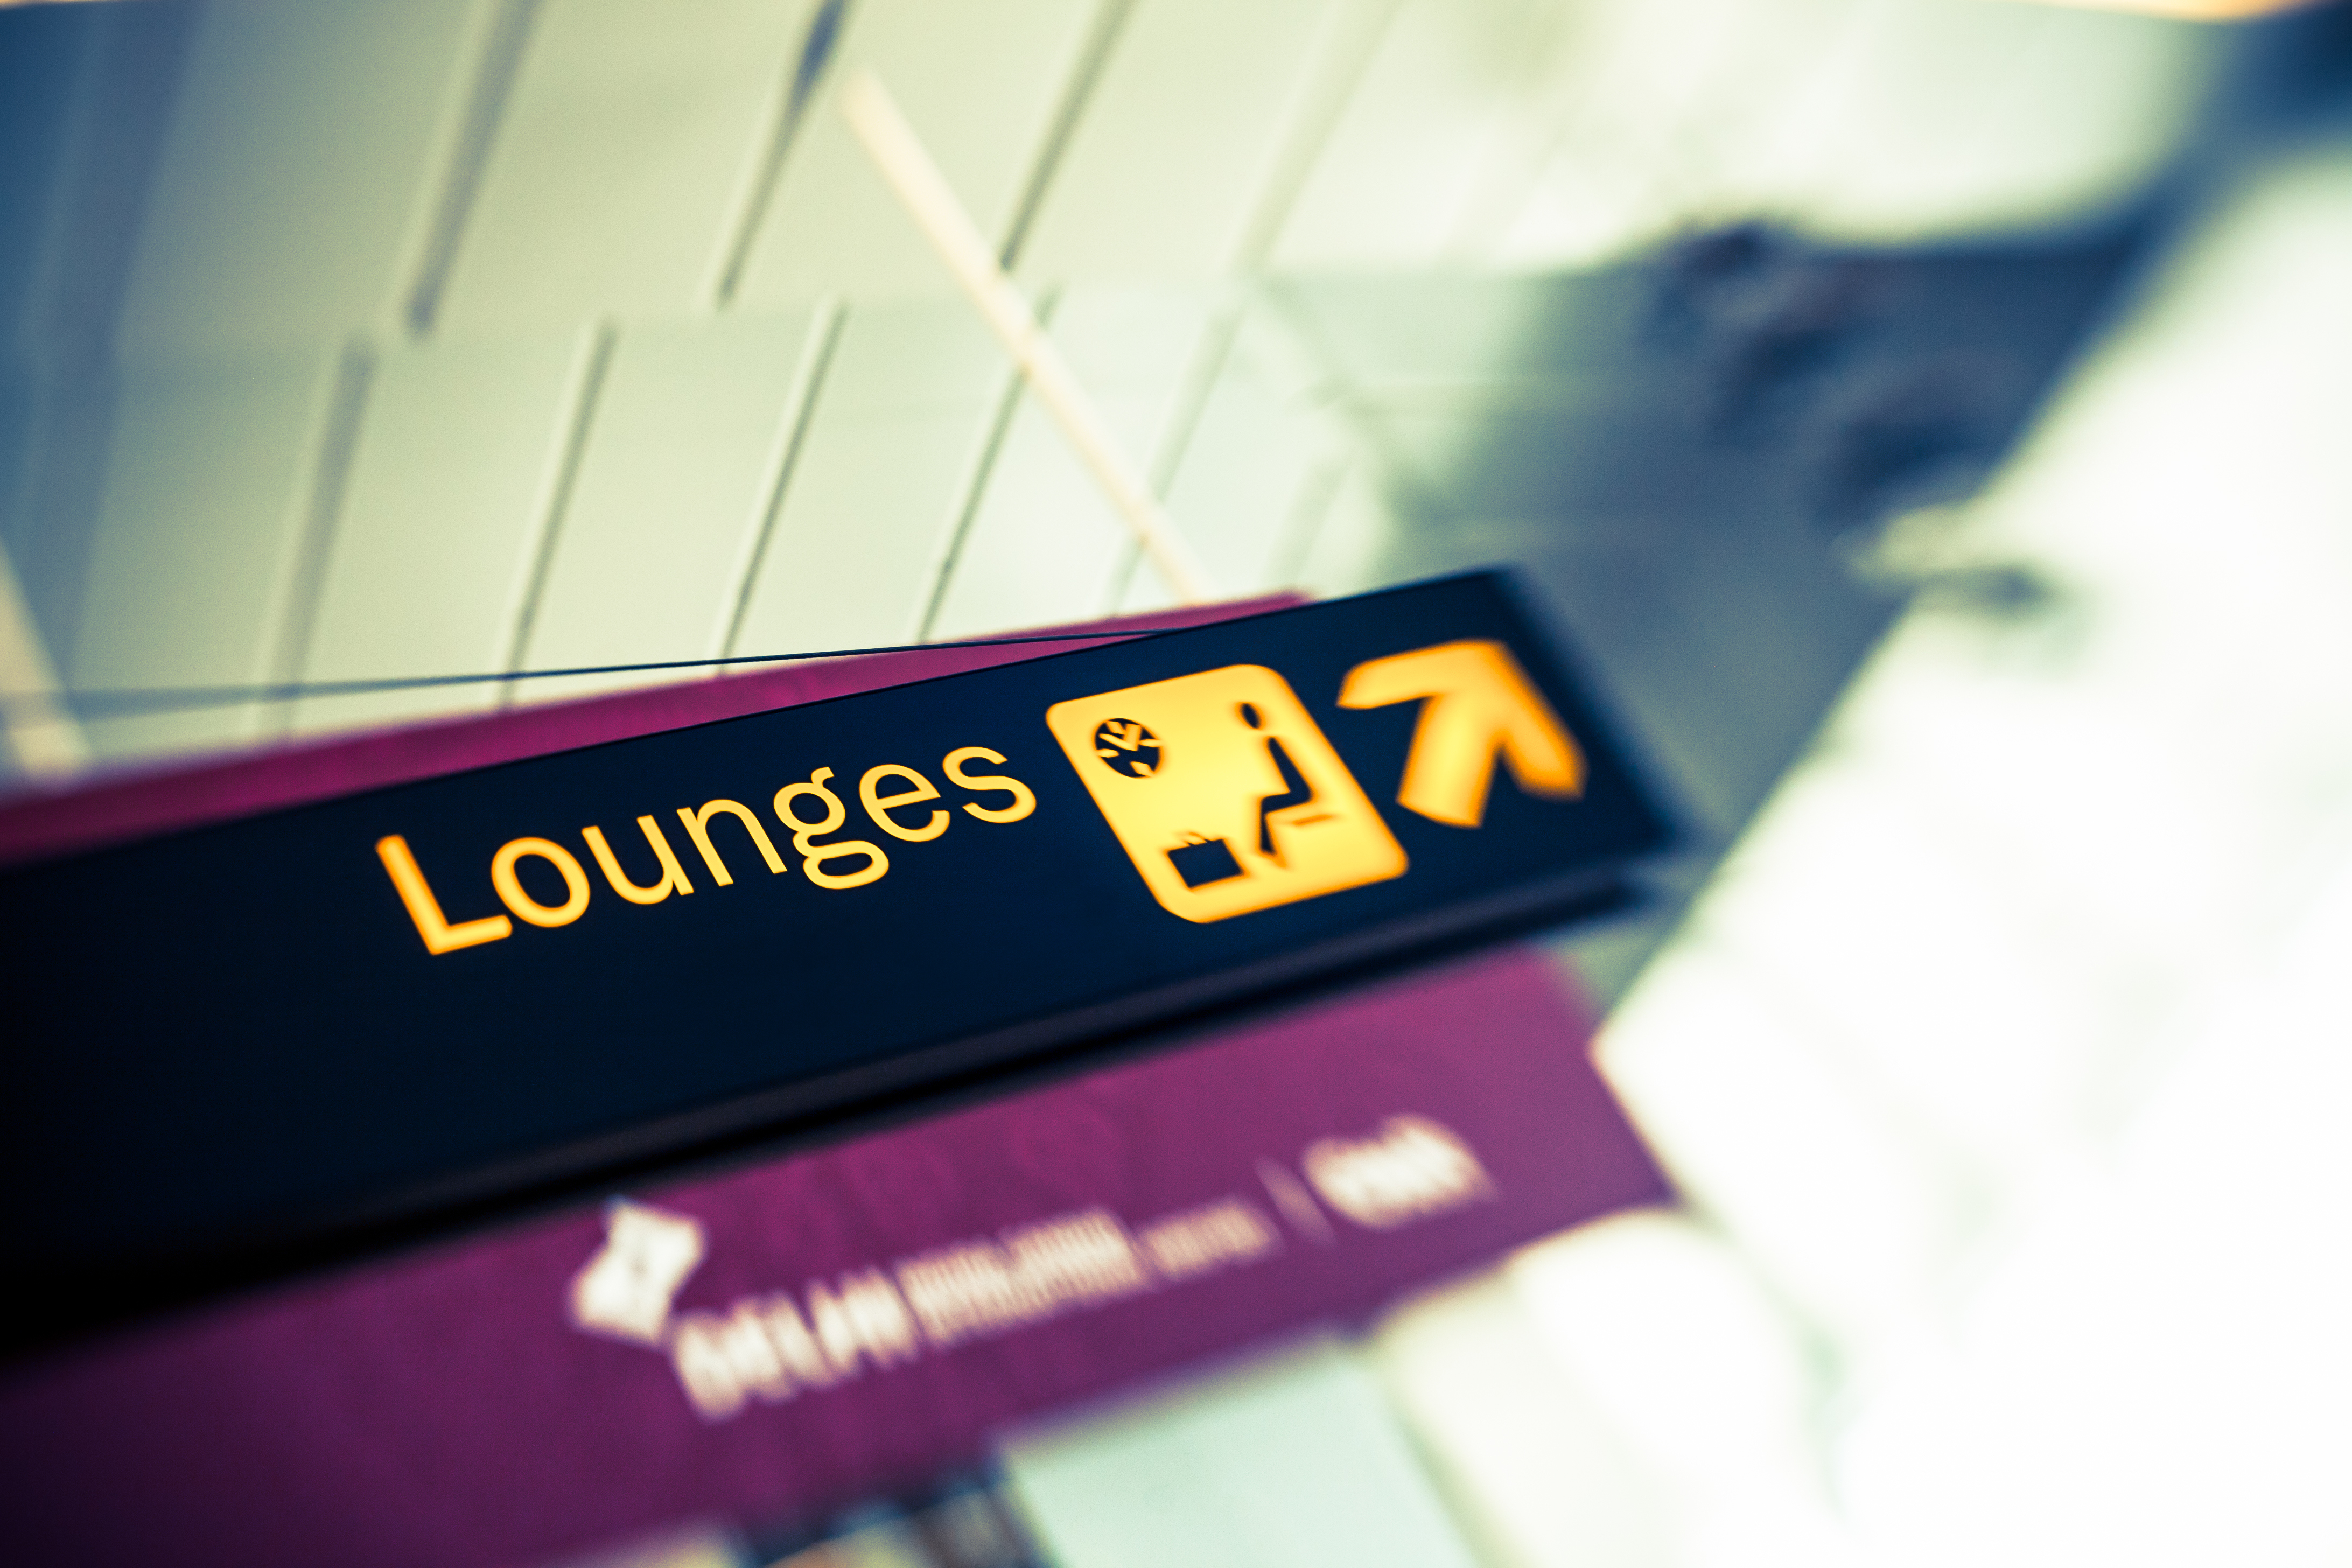 airport director challenges 10 challenges for your airline and airport in 2013 as we enter 2013, what are some of the challenges that both airlines and airports will face.